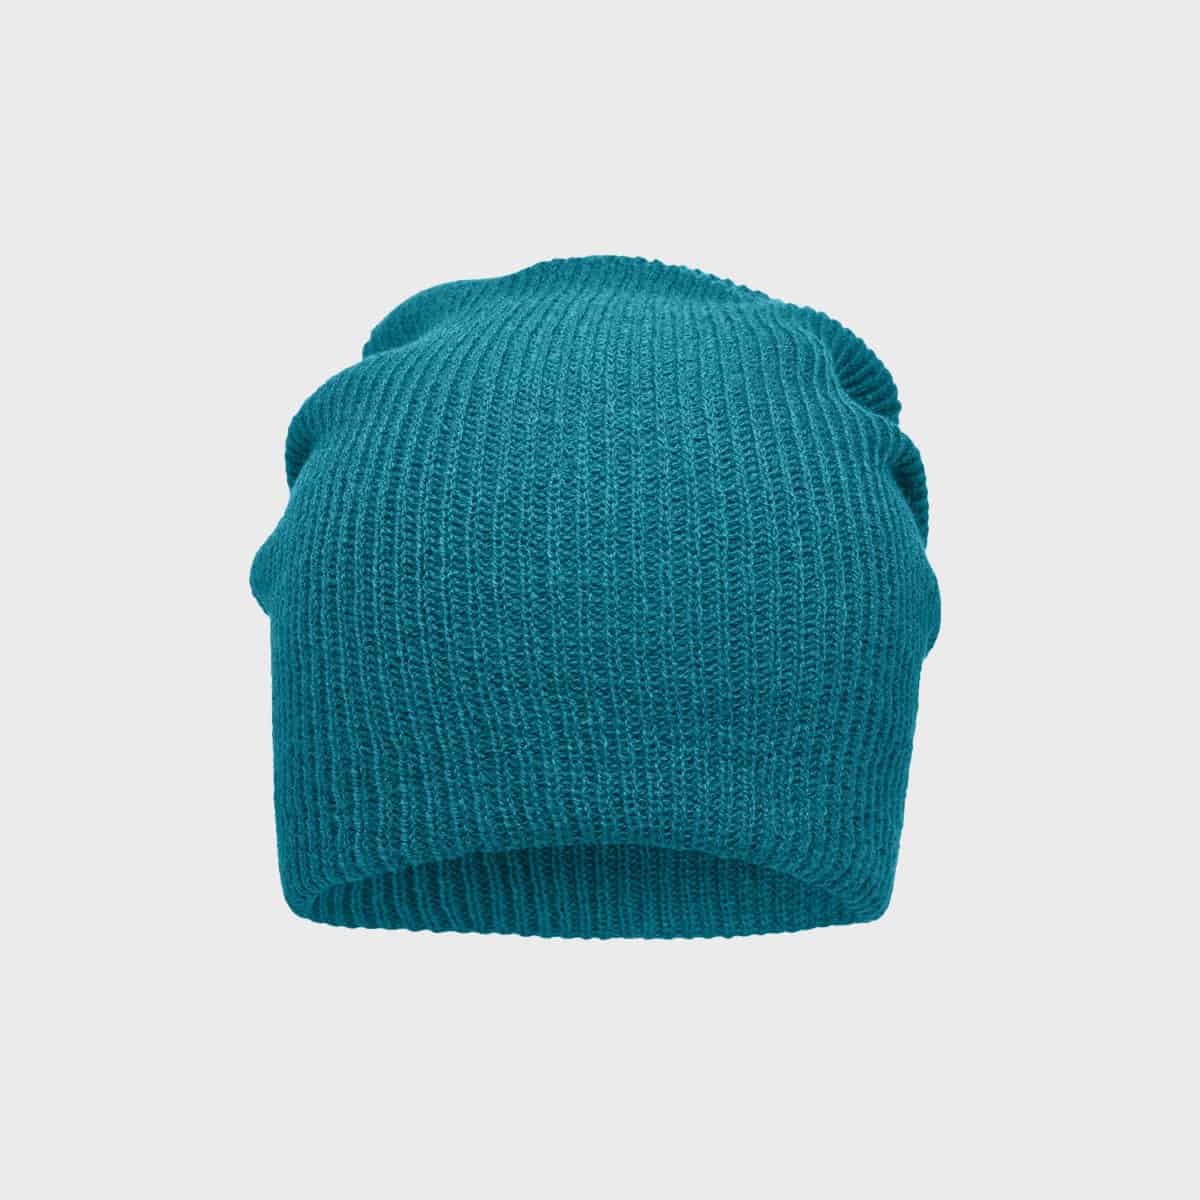 knitted-beanie-long-petrol-kaufen-besticken_stickmanufaktur